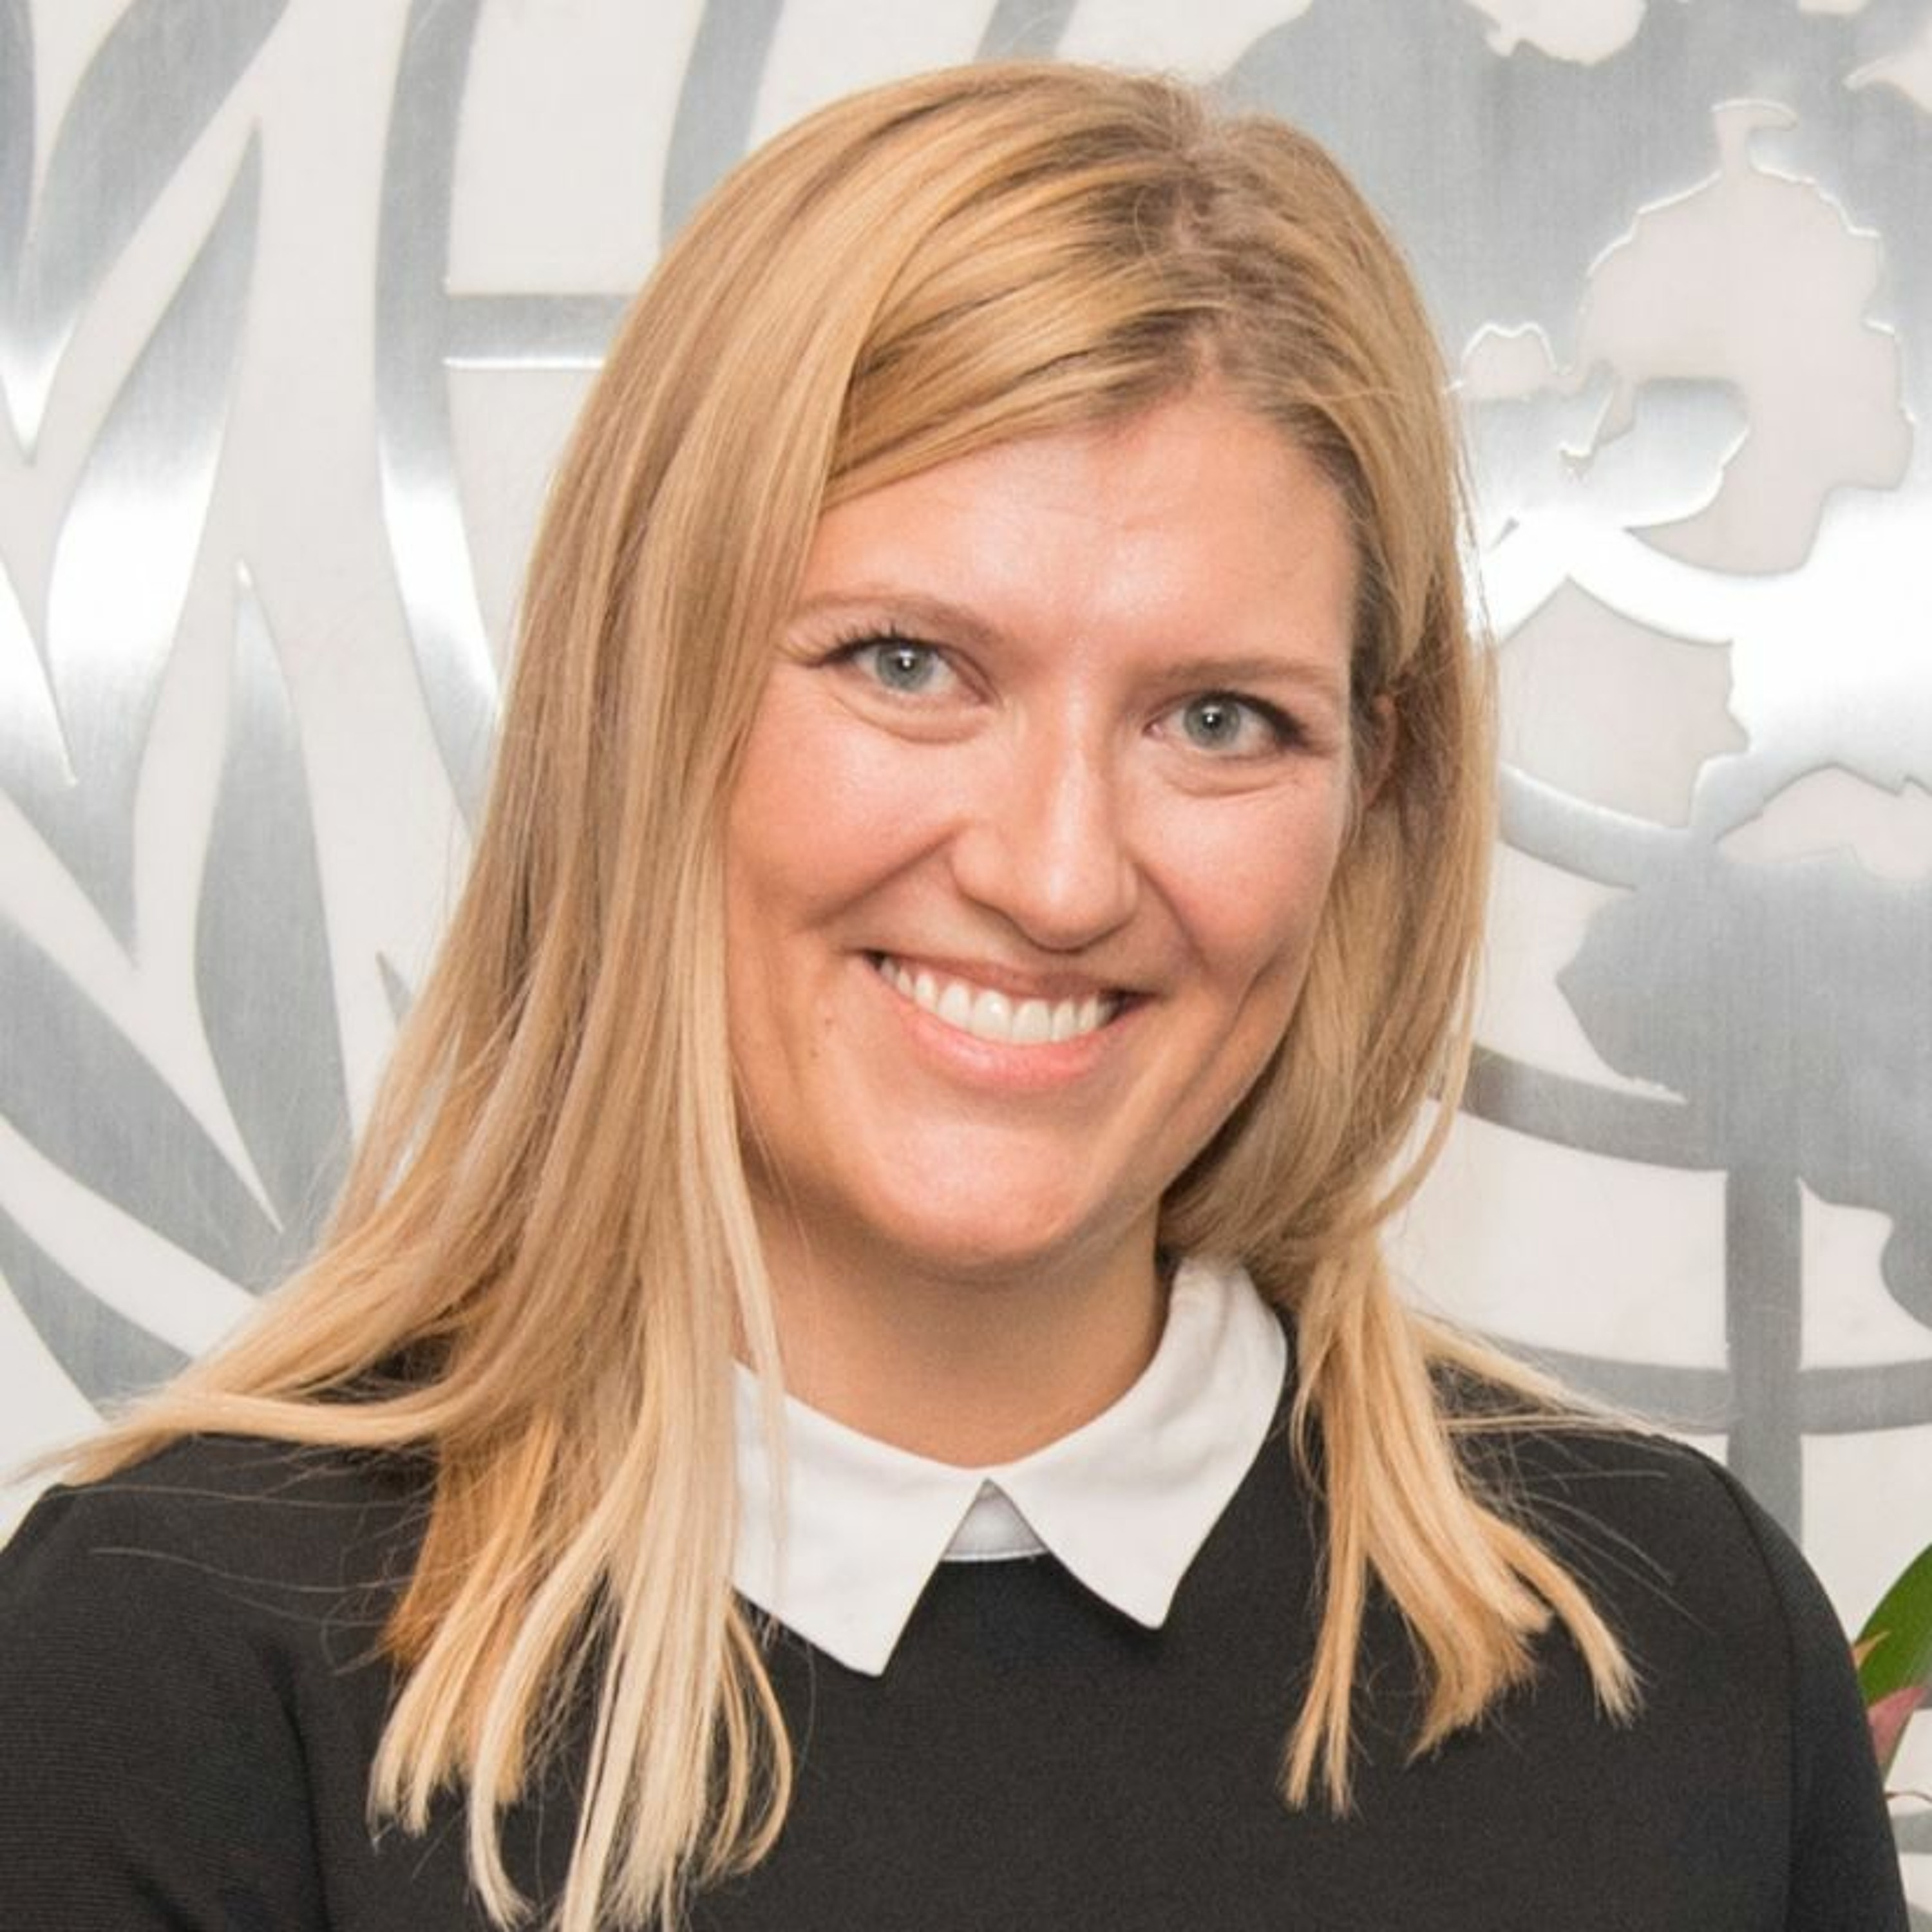 Beatrice Fihn on the Total Elimination of Nuclear Weapons